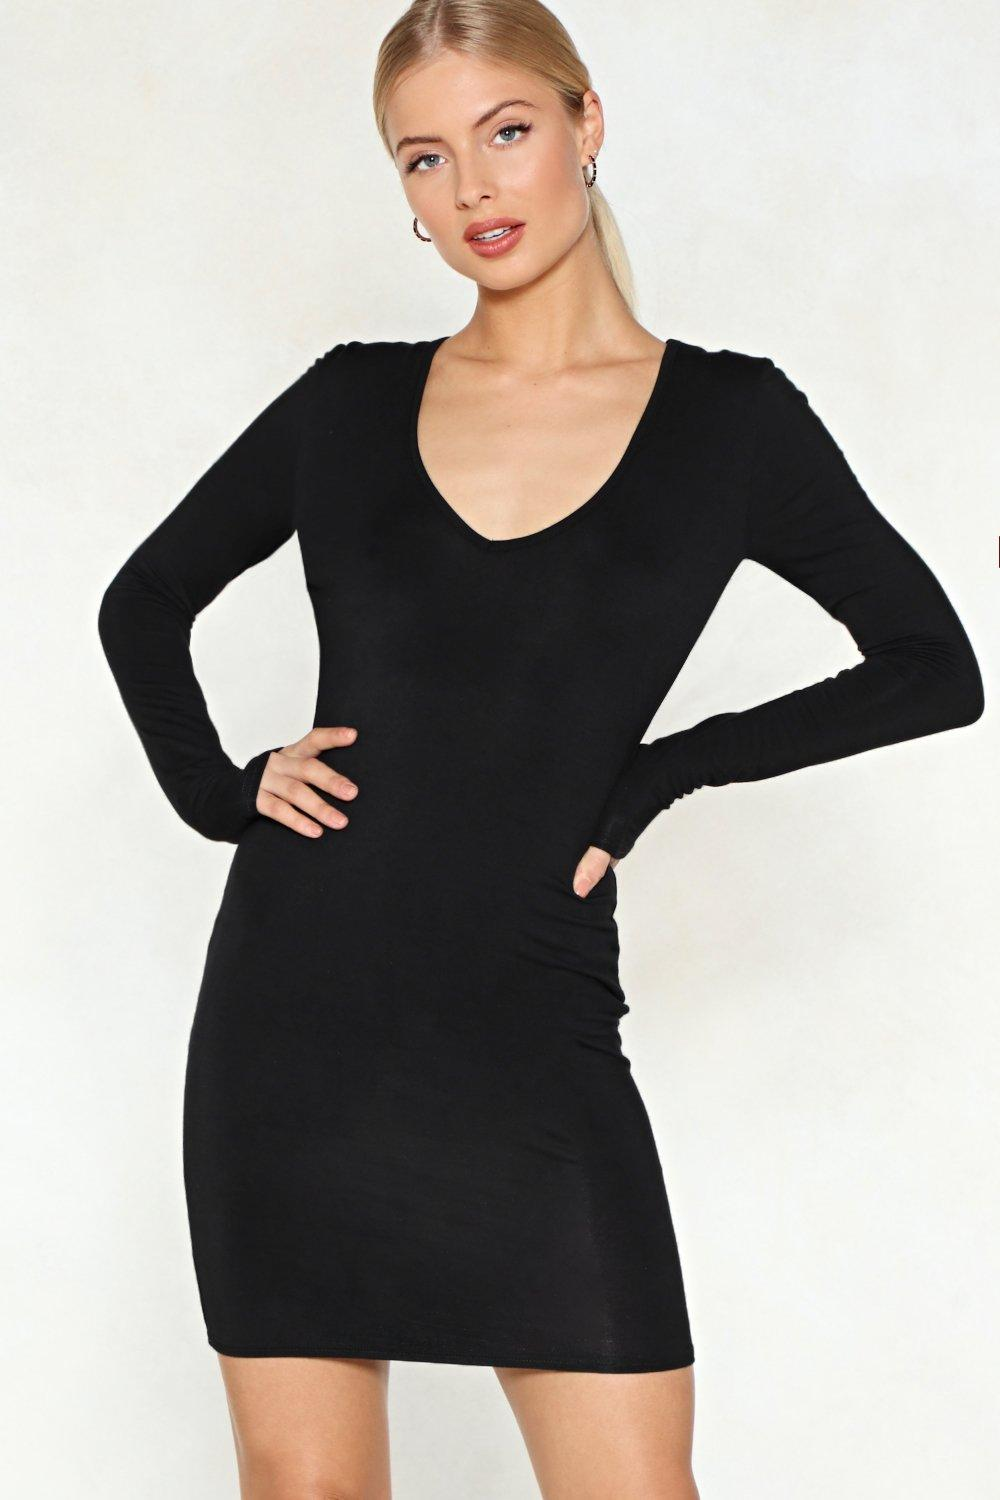 41470528d Womens Black Couldn t V Happier Bodycon Dress. Hover to zoom